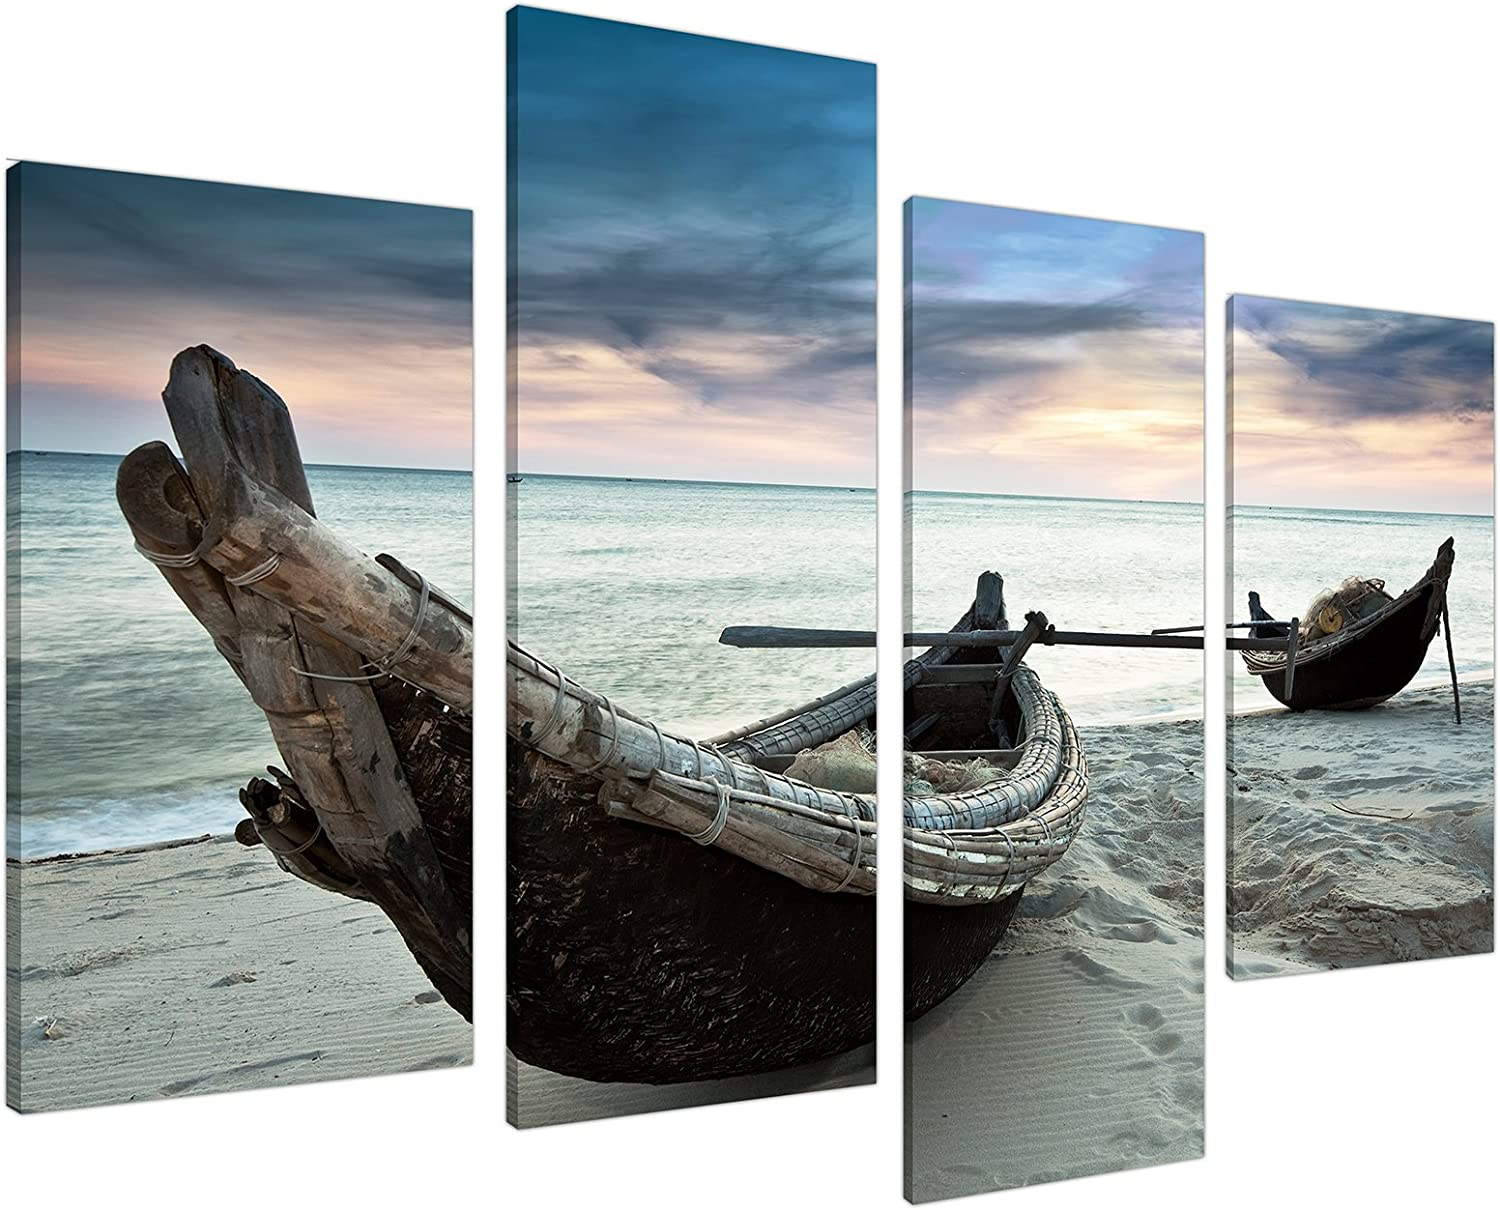 Thailand Wall Art Decor Canvas Beach Pictures - Fishing Boats Sunset in Blue - 51